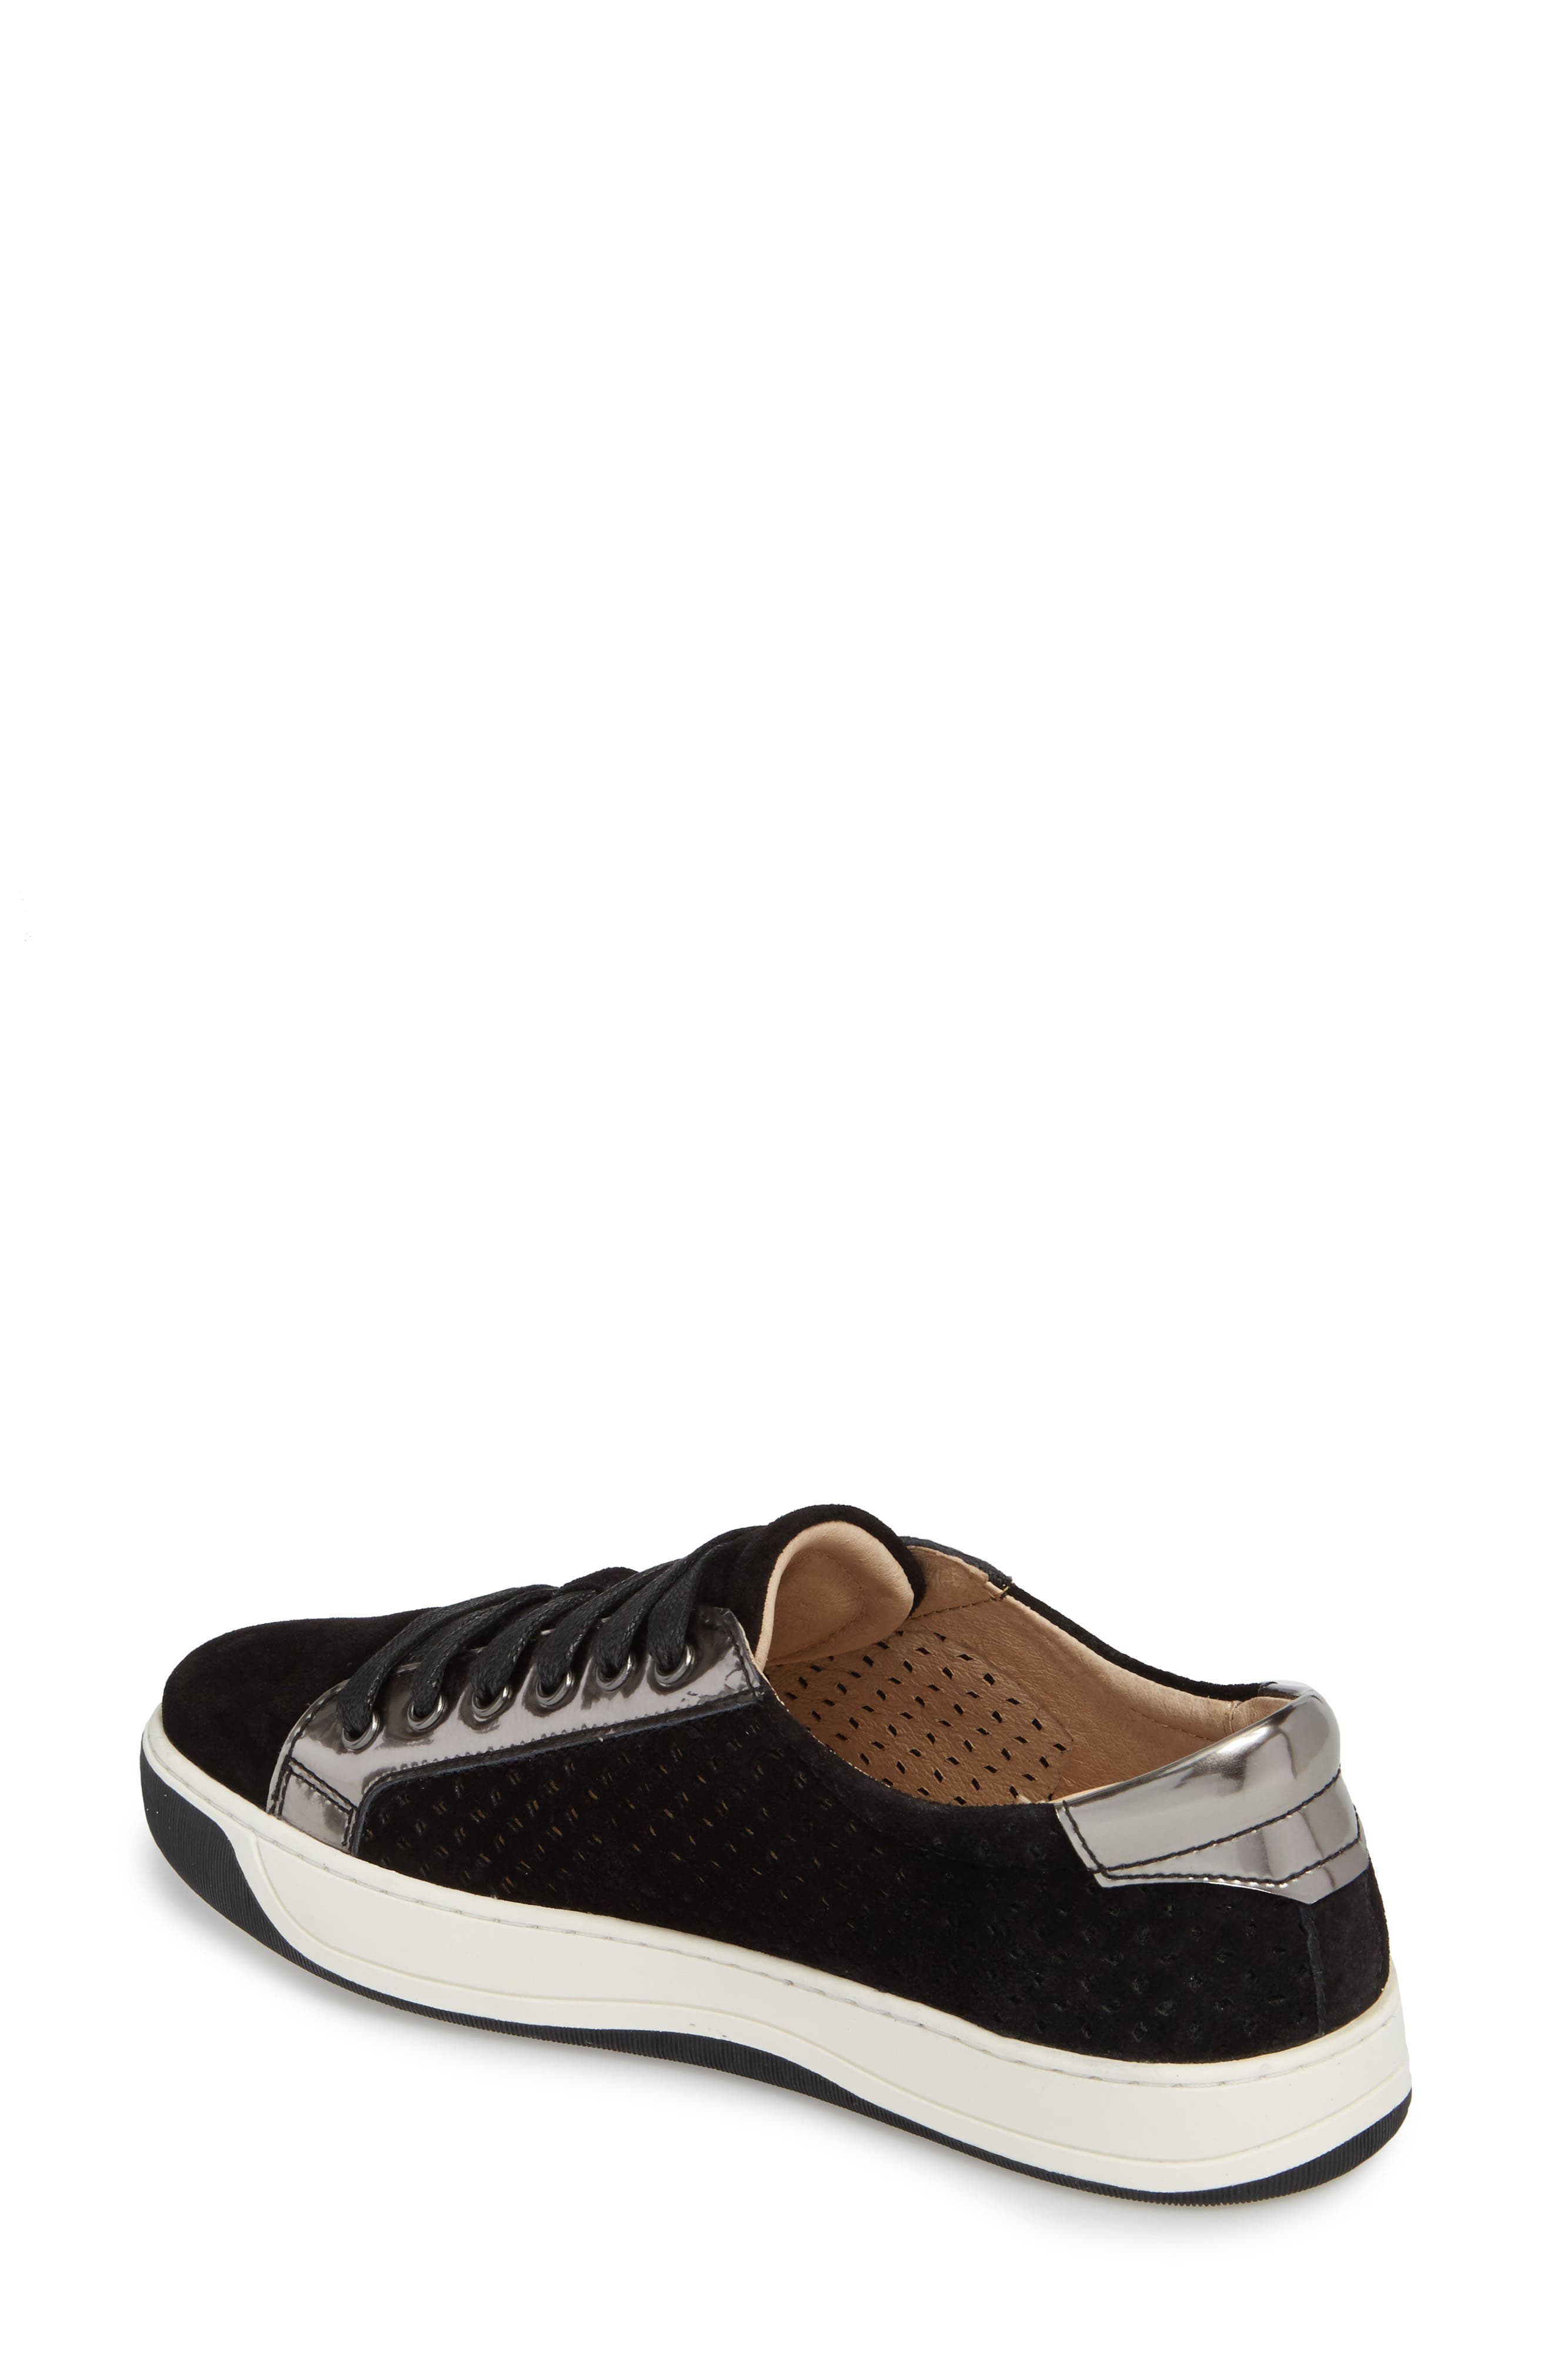 Emerson Perforated Sneaker,                             Alternate thumbnail 2, color,                             001